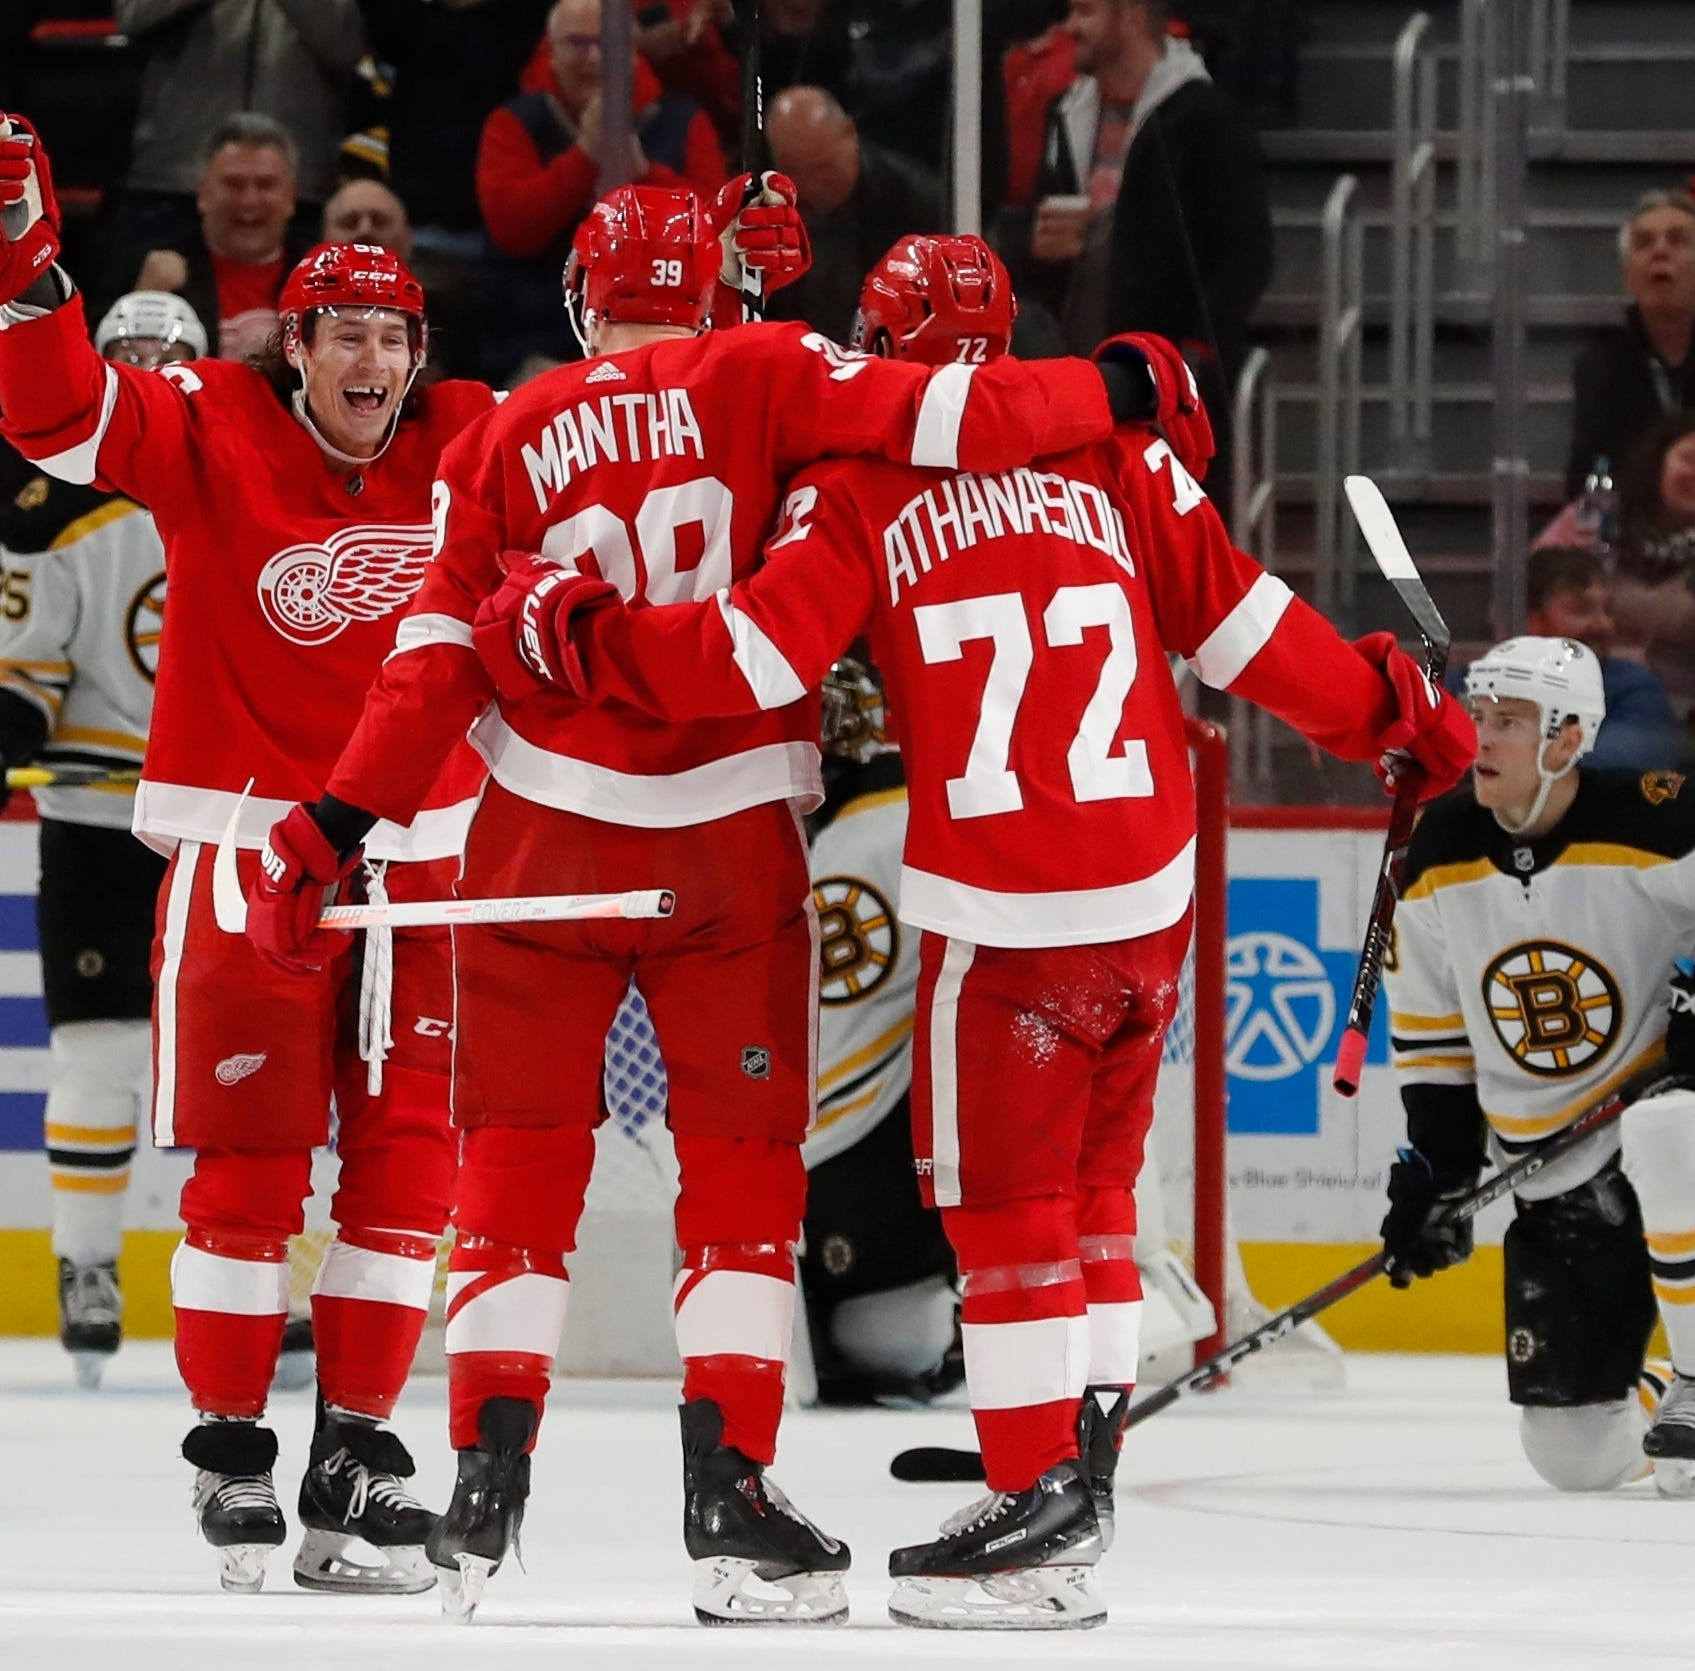 'We're just having fun': Mantha's 5-point night leads Wings in 5th straight win